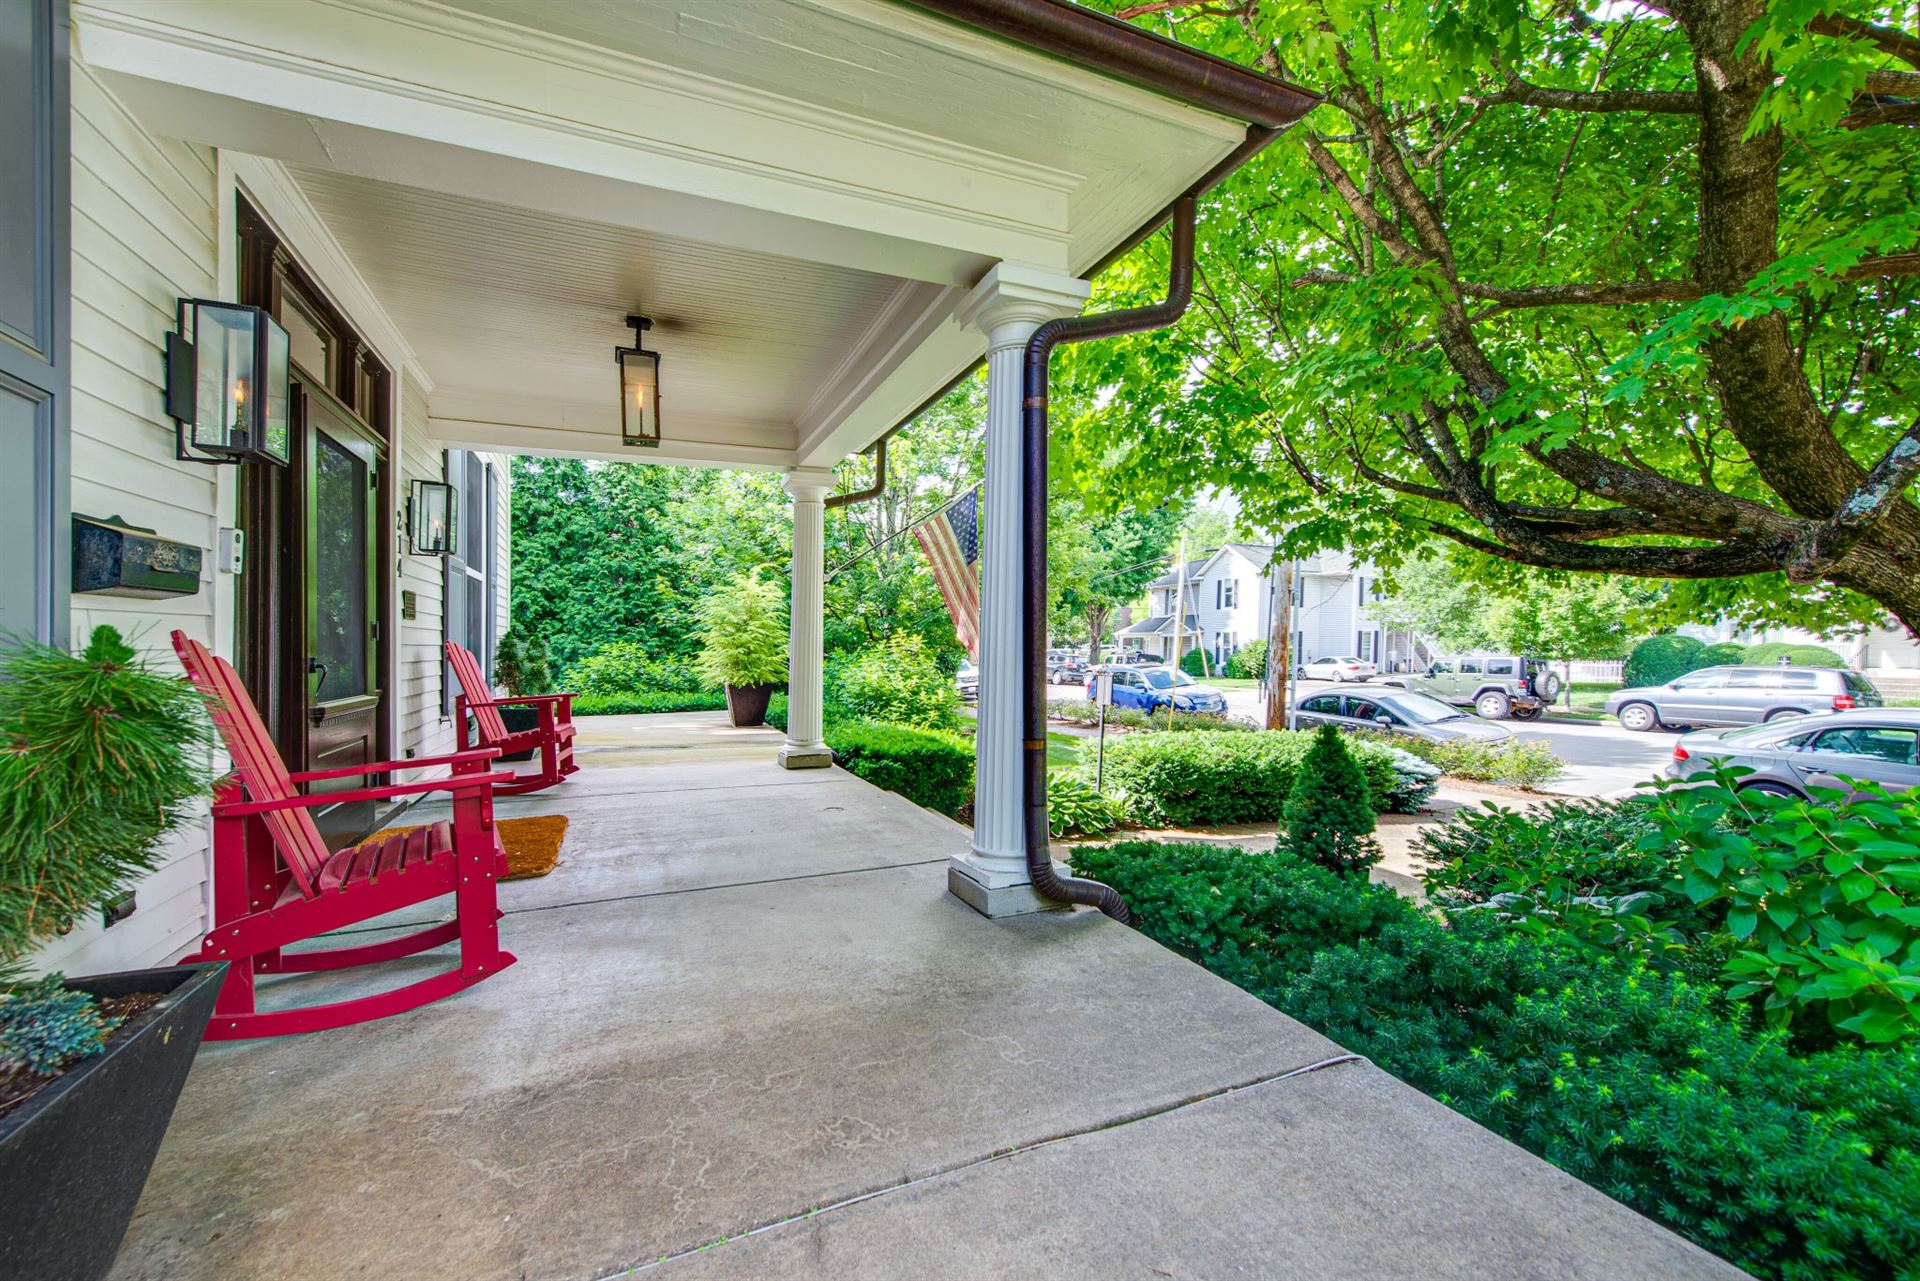 Photo of 214 4th Ave S, Franklin, TN 37064 (MLS # 2262660)